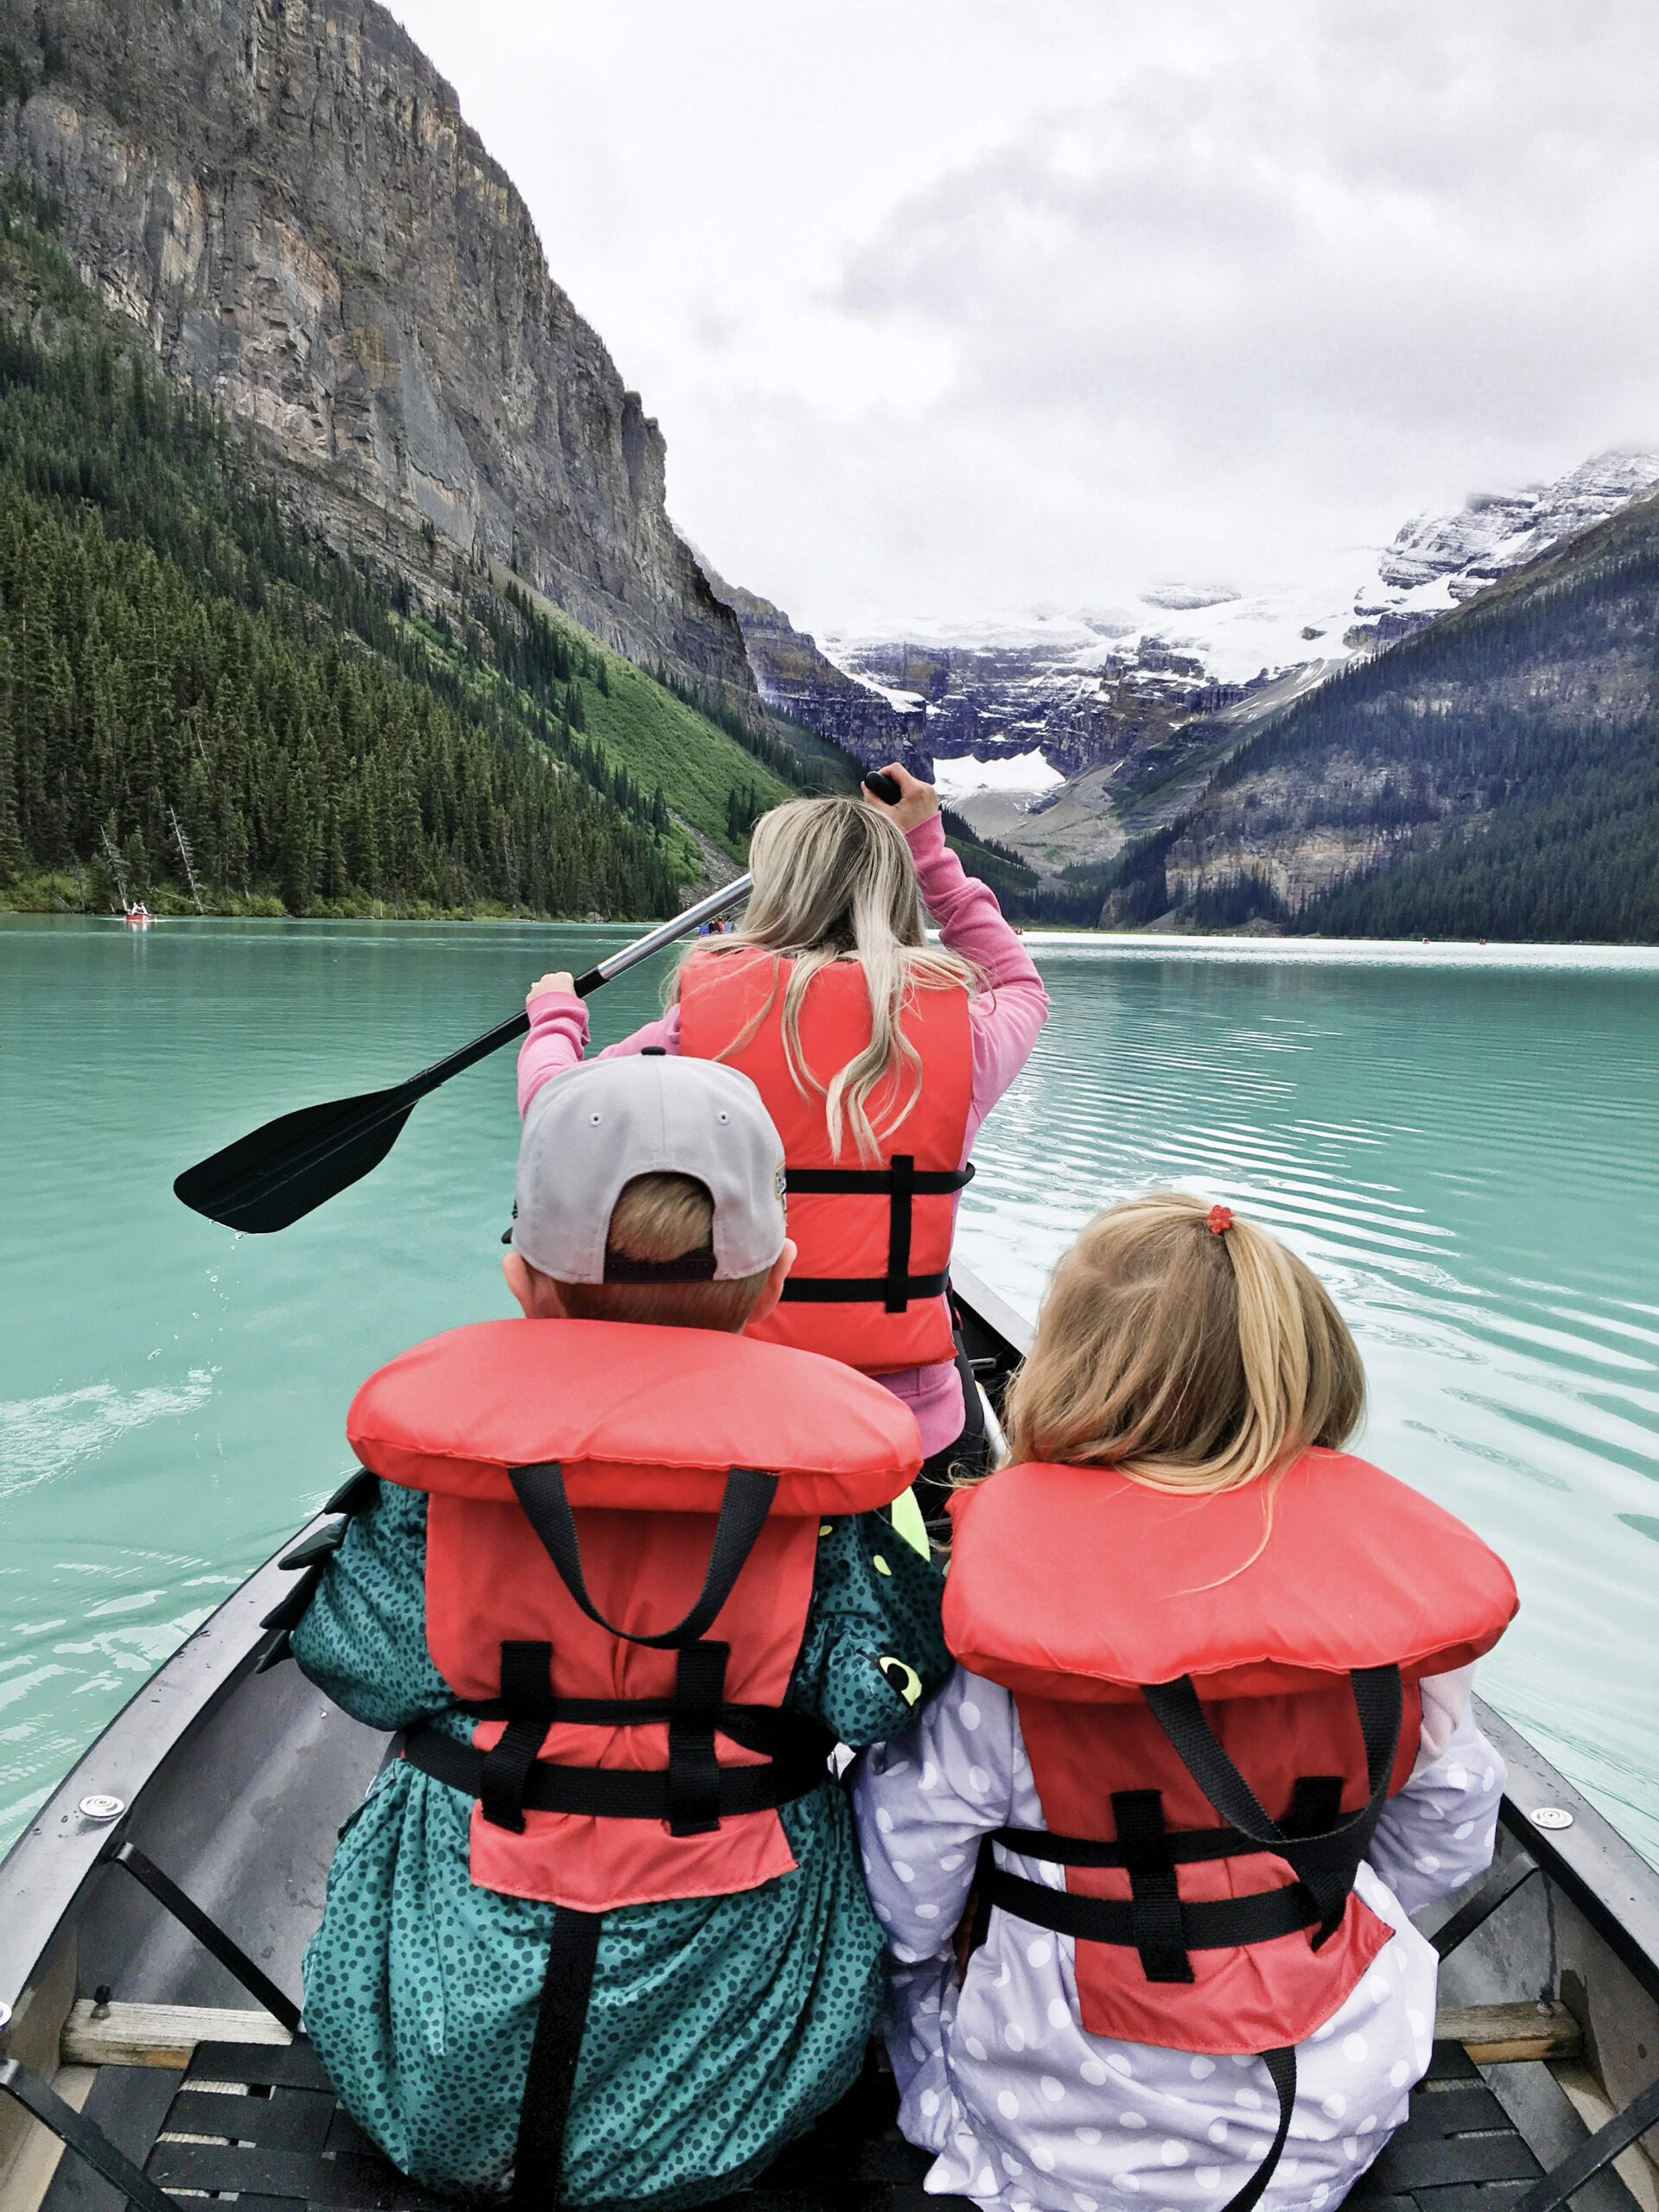 Banff Travel Guide- Lake Louise on Livin' Life with Style